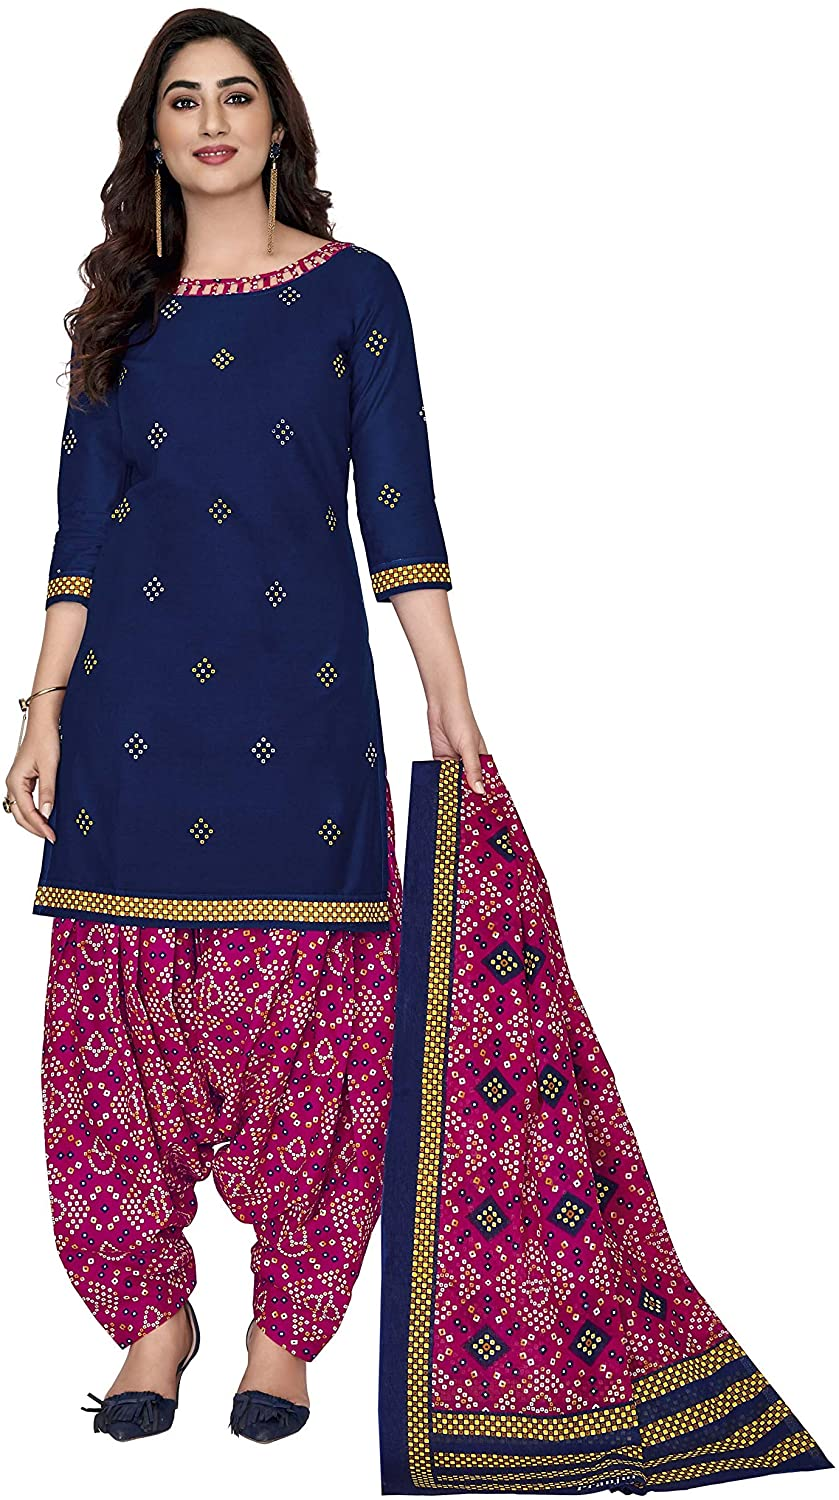 Women's Cotton Unstitched Salwar Suits with Dupatta Dress Material Indian Ethnic Wear for Girl Blue